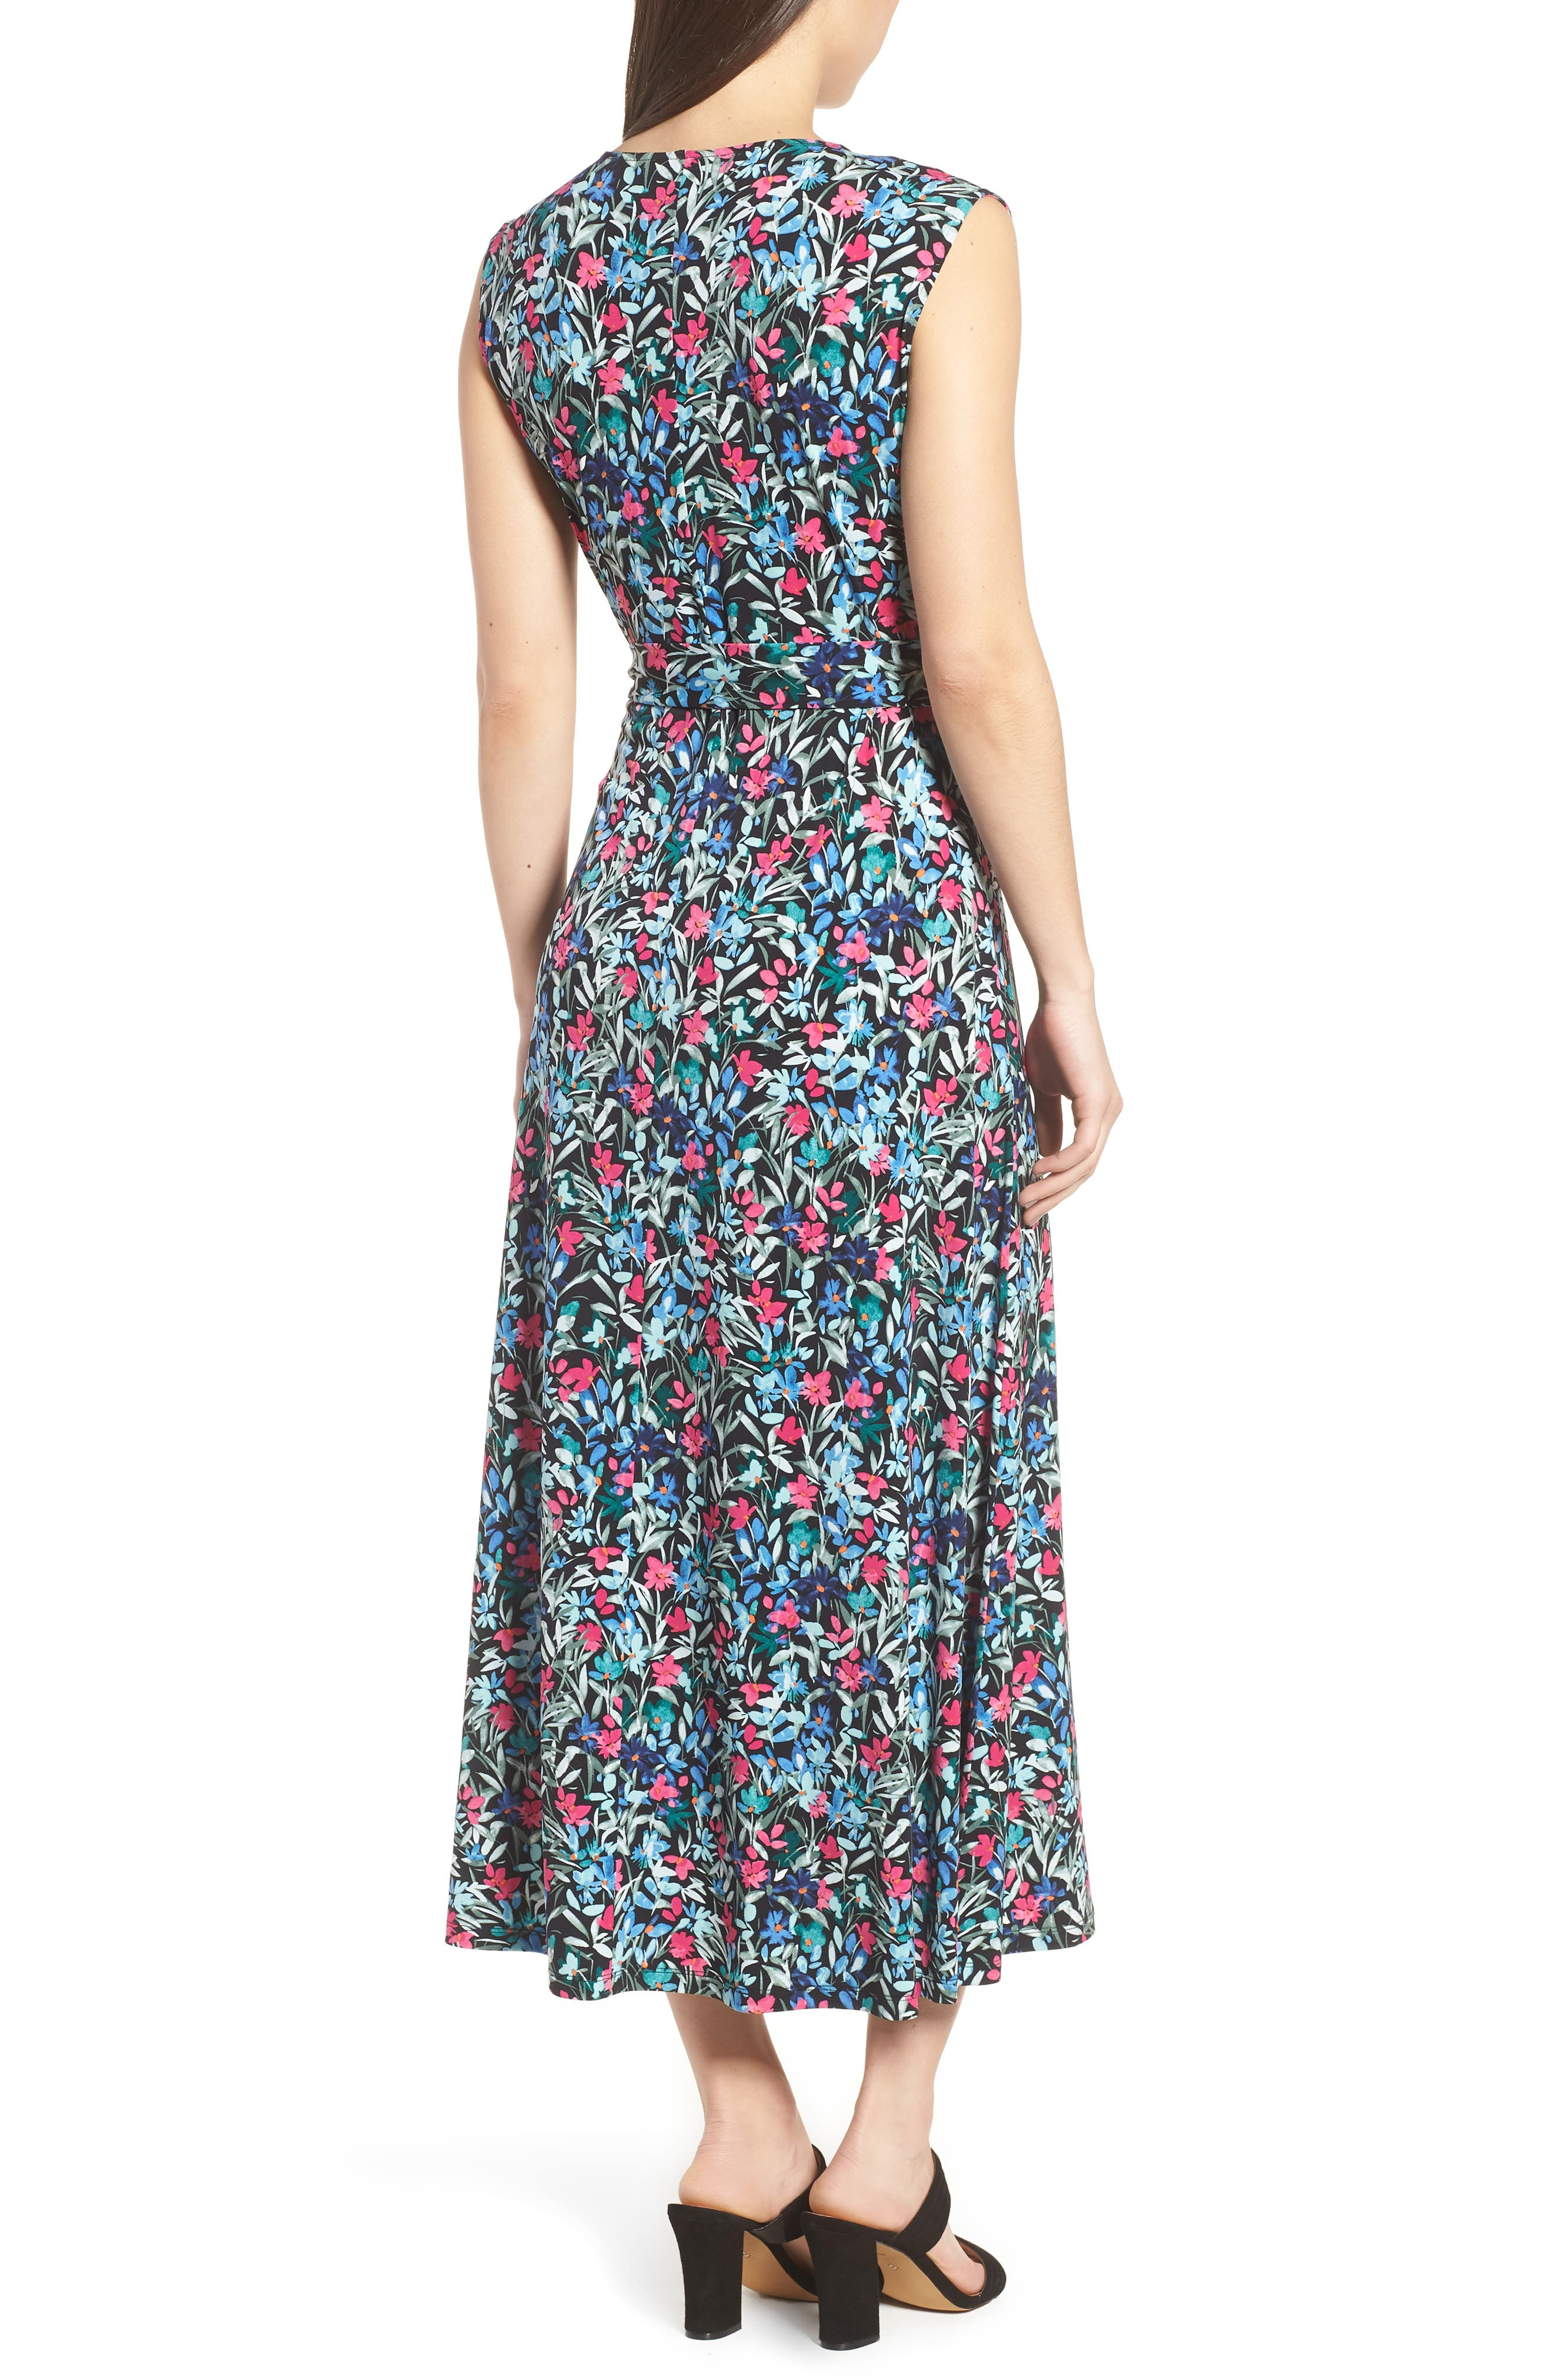 Radiant Flowers Sleeveless Tie Waist Dress,                             Alternate thumbnail 2, color,                             060-Rich Black